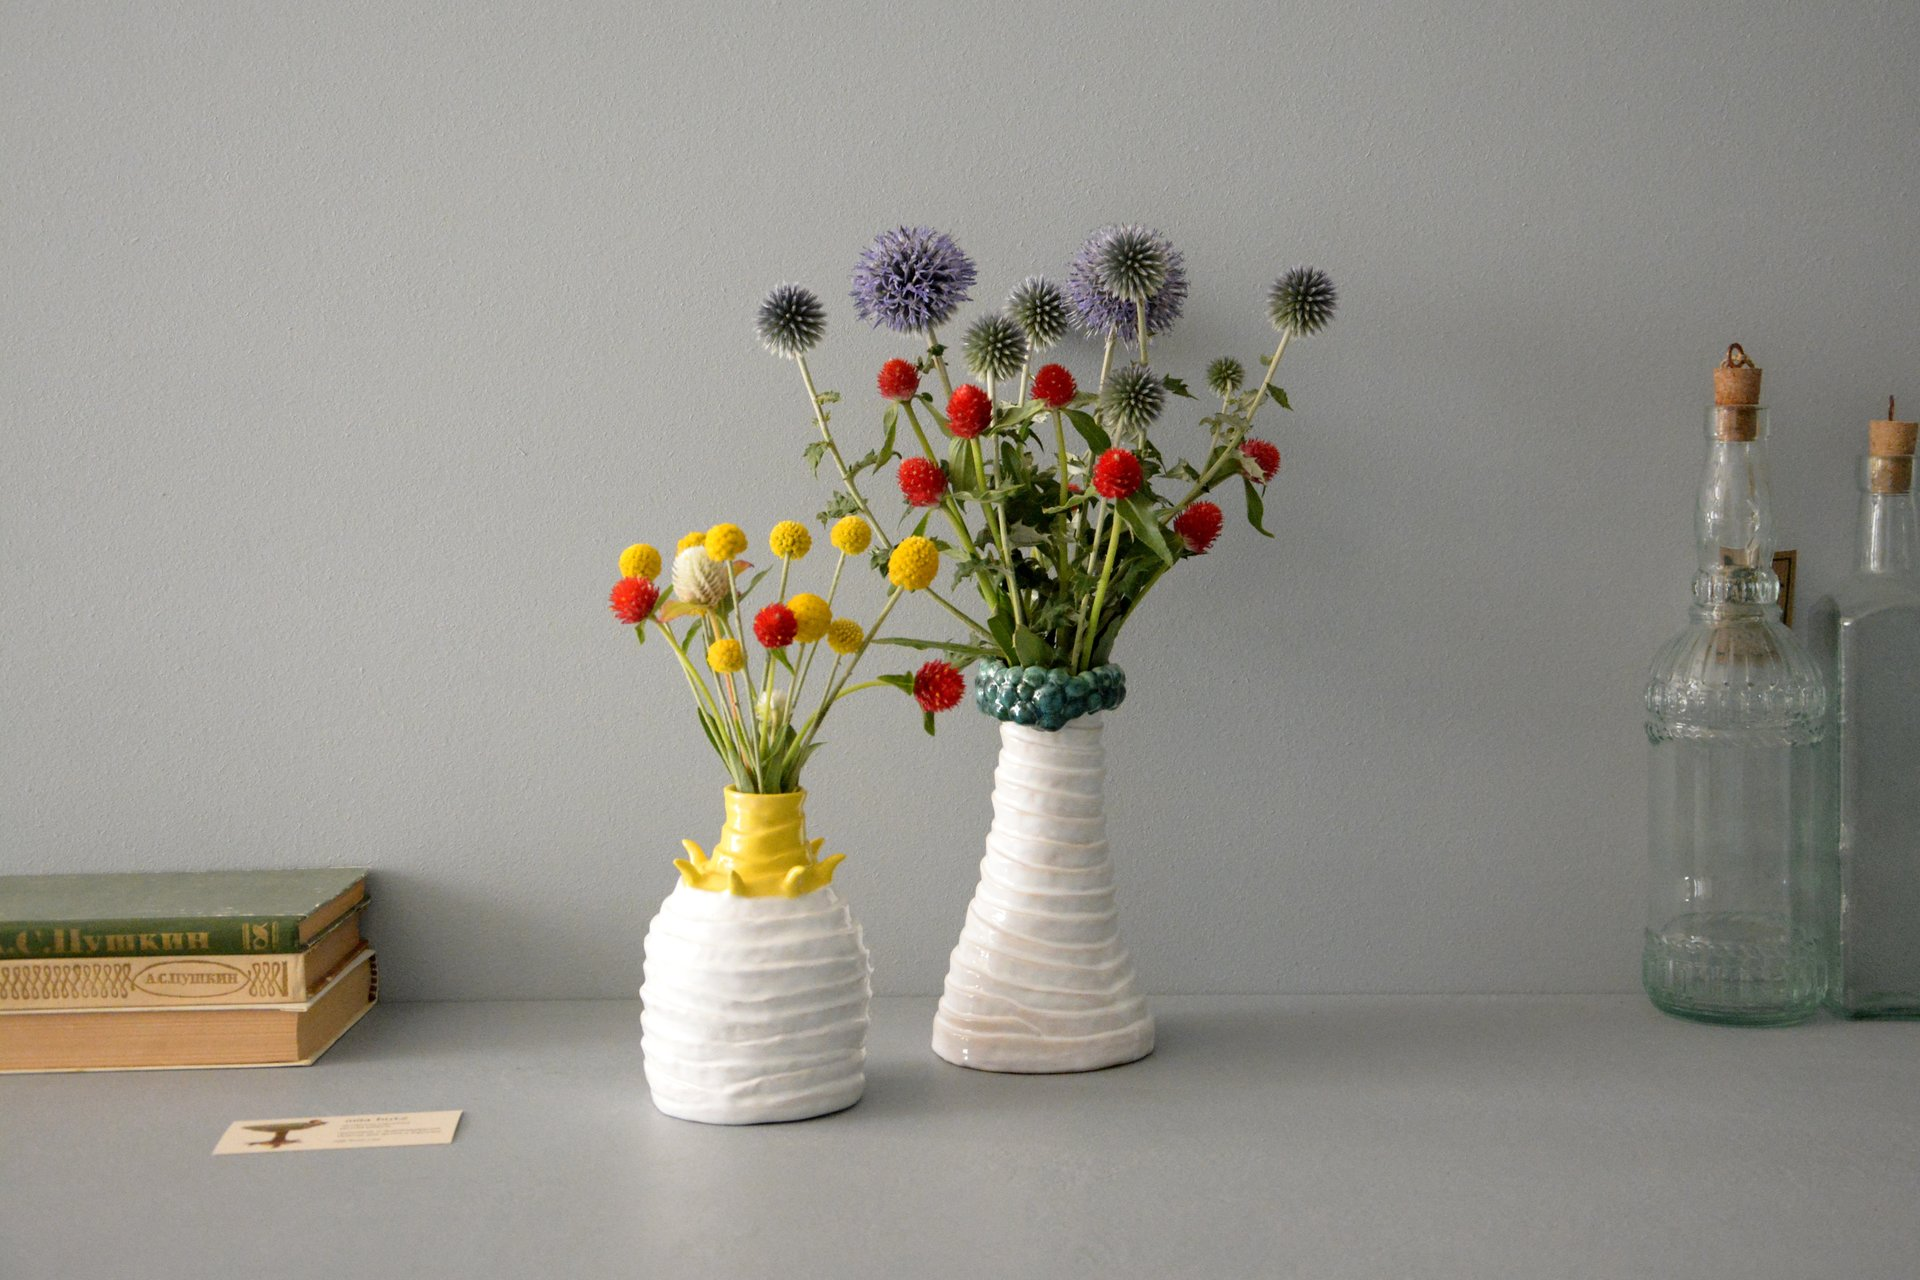 Decorative white-yellow vase Tourniquets, height - 13,5 cm, photo 6 of 7. 1163.